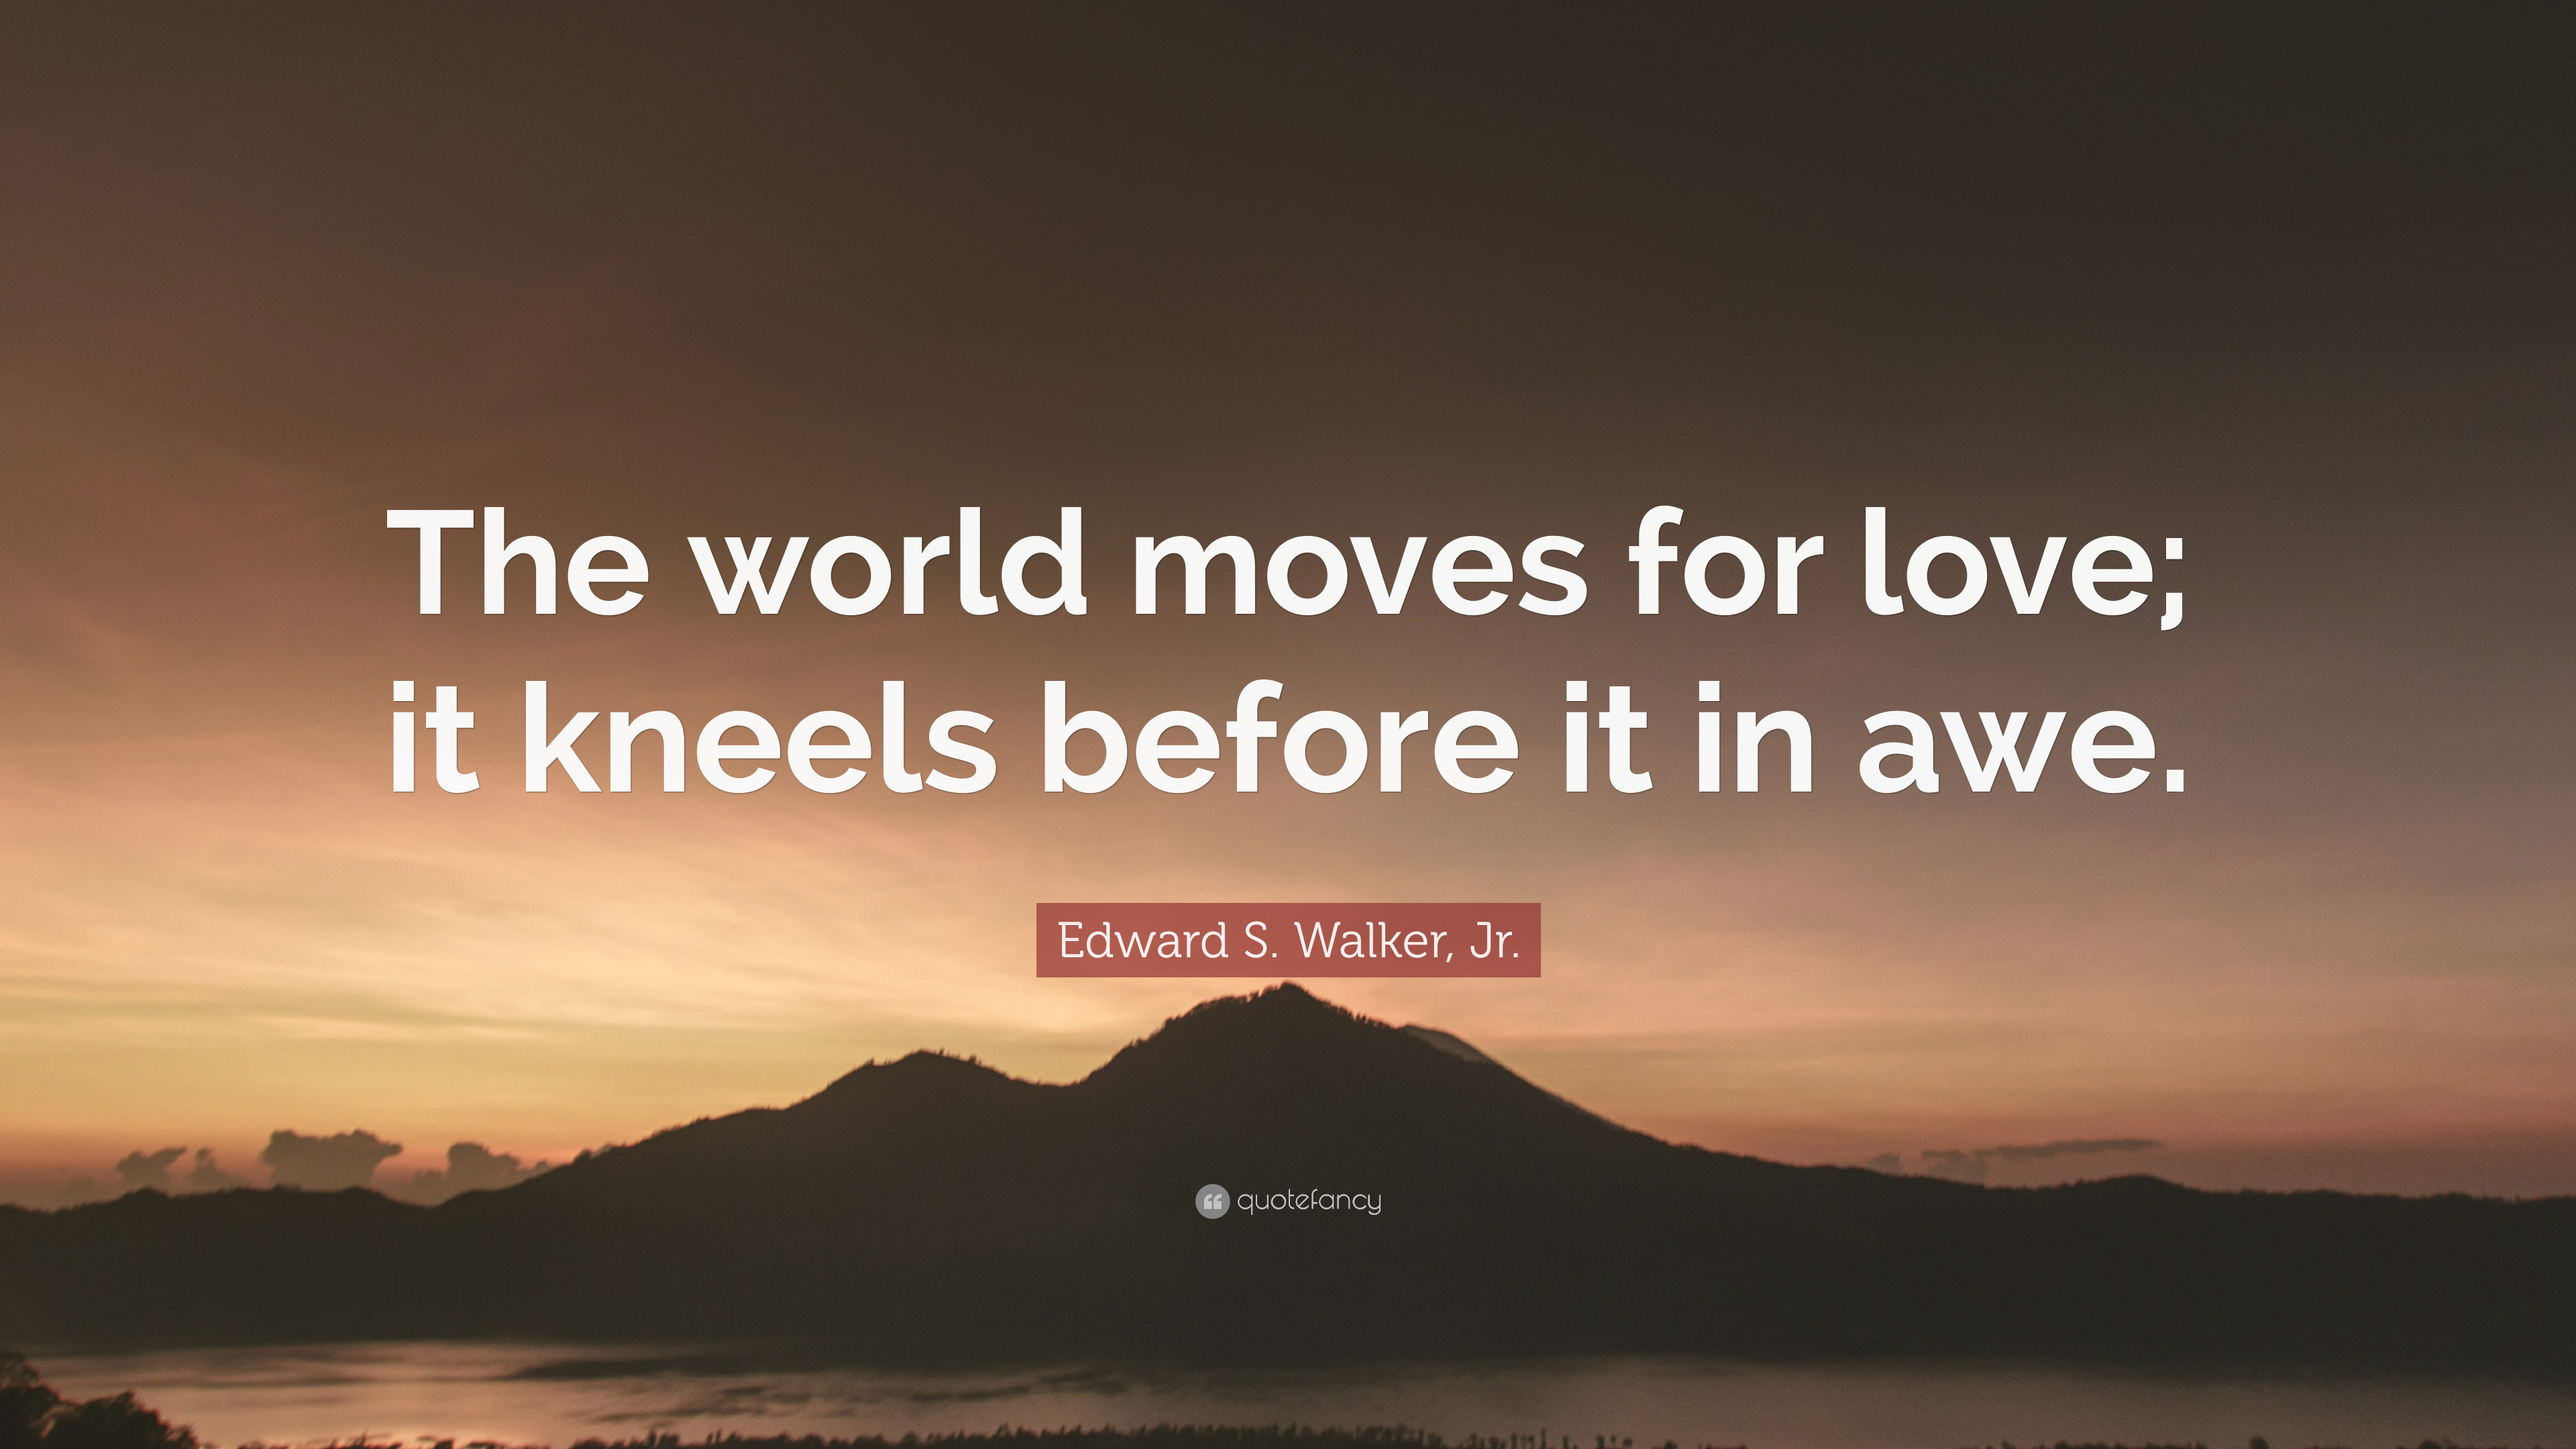 Edward S Walker Jr Quote The World Moves For Love It Kneels Before It In Awe 7 Wallpapers Quotefancy